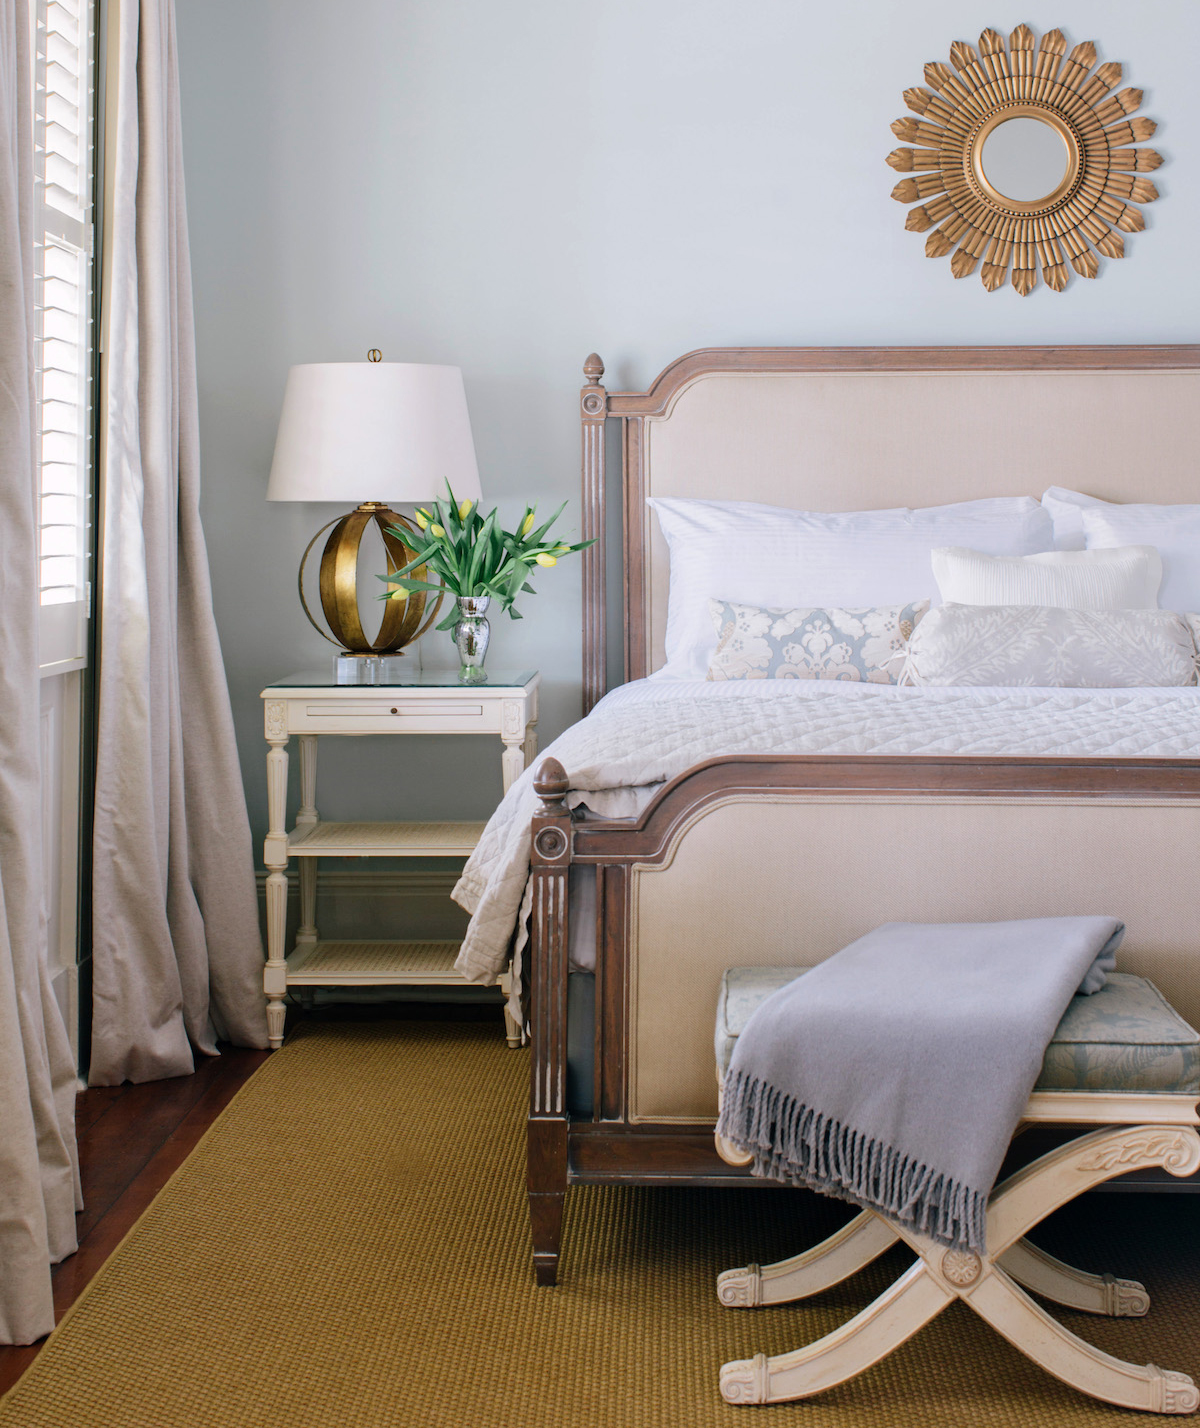 8 Changes Your Bedroom Needs So You Can Sleep Better recommendations